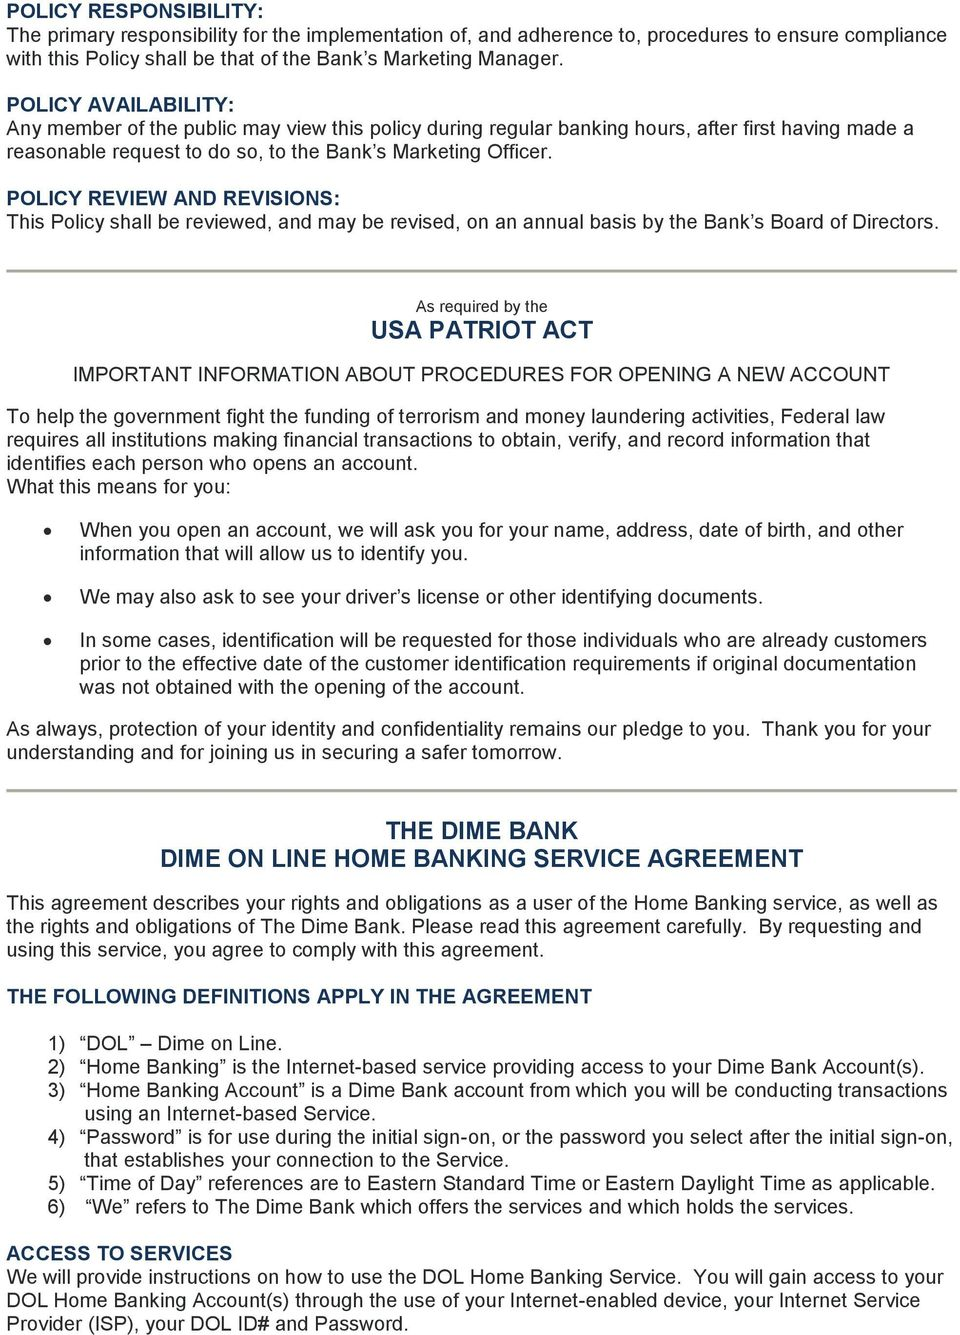 the dime bank agreements, disclosures, and policies - pdf